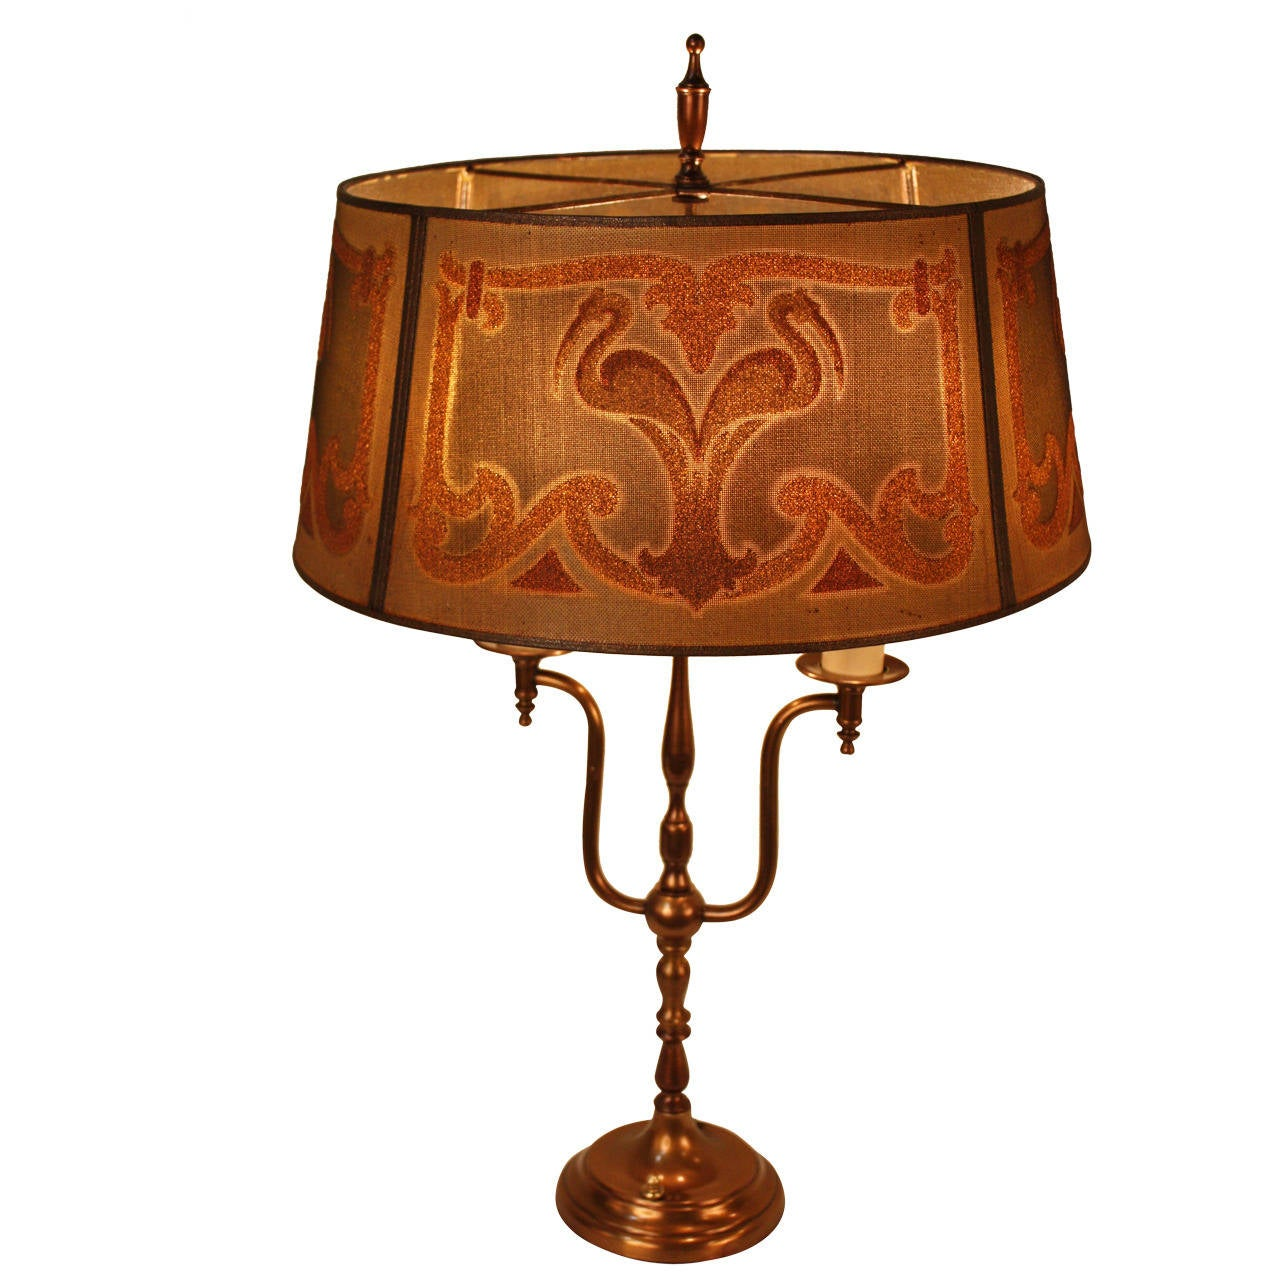 Art Deco Table Lamp By Mutual Sunset Lamp Company At 1stdibs